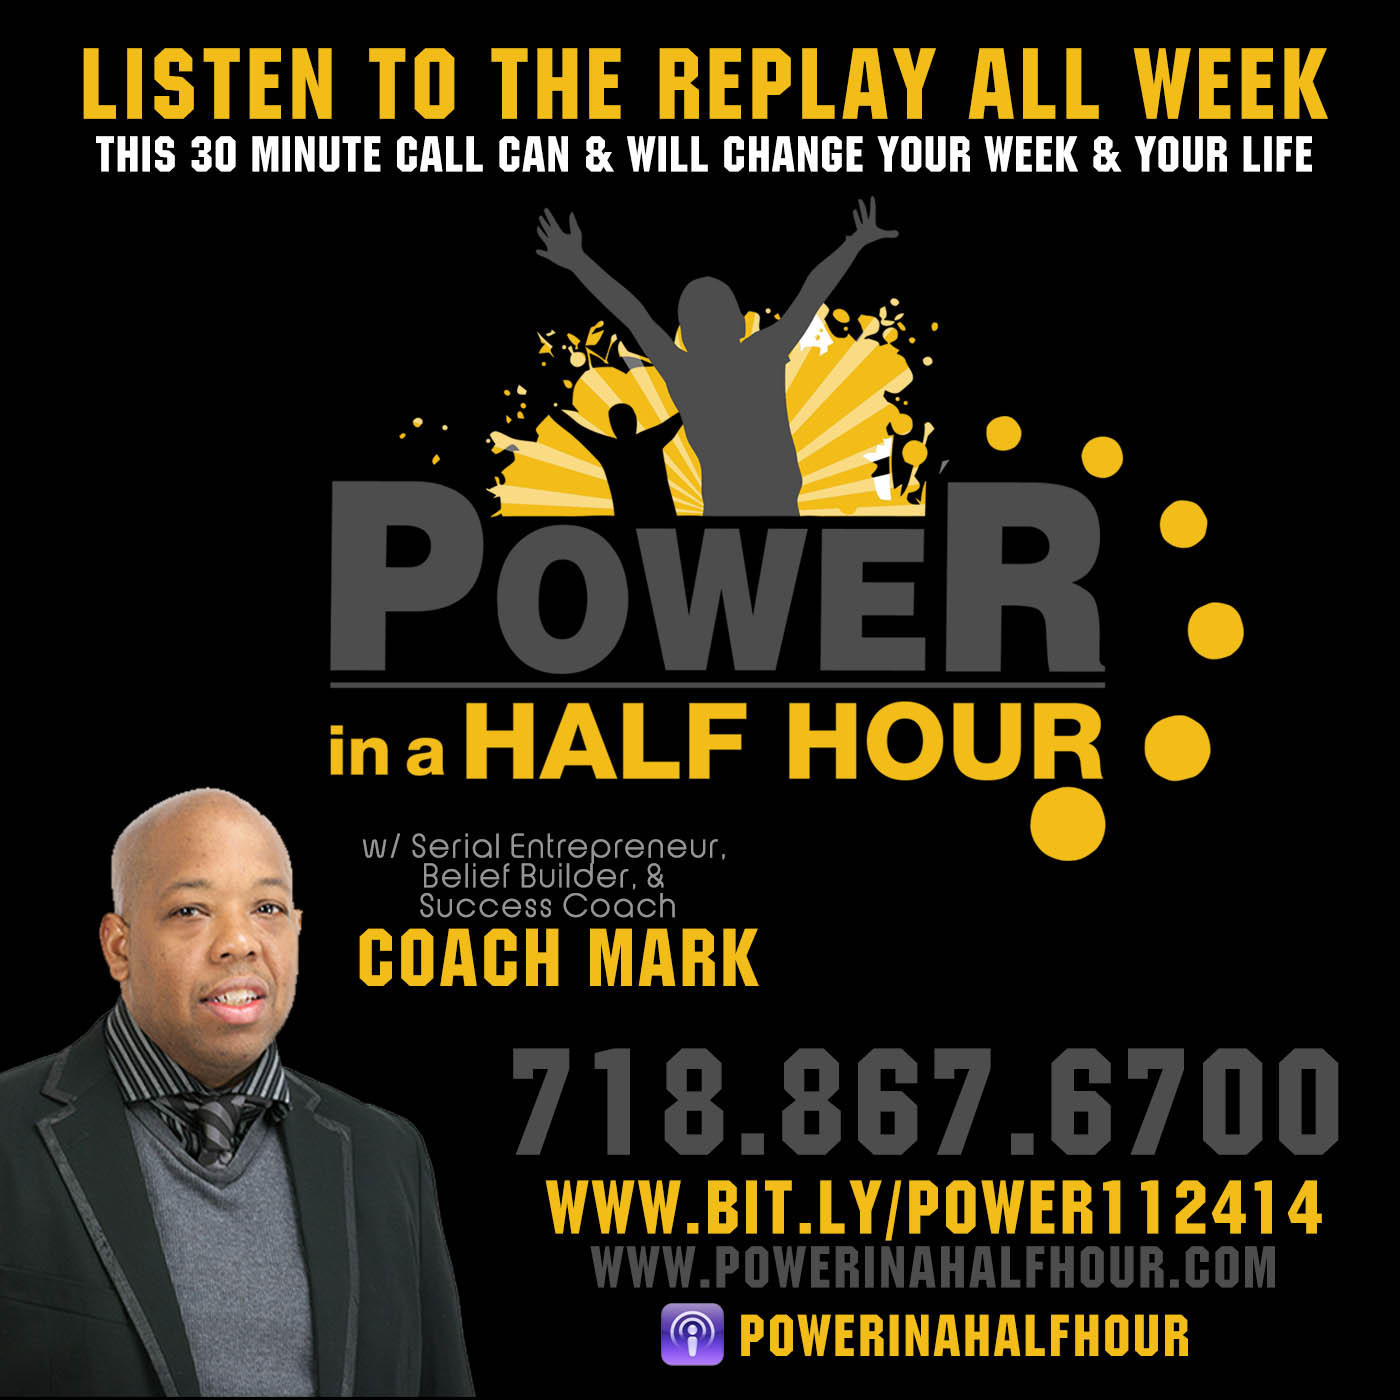 power1124 replay